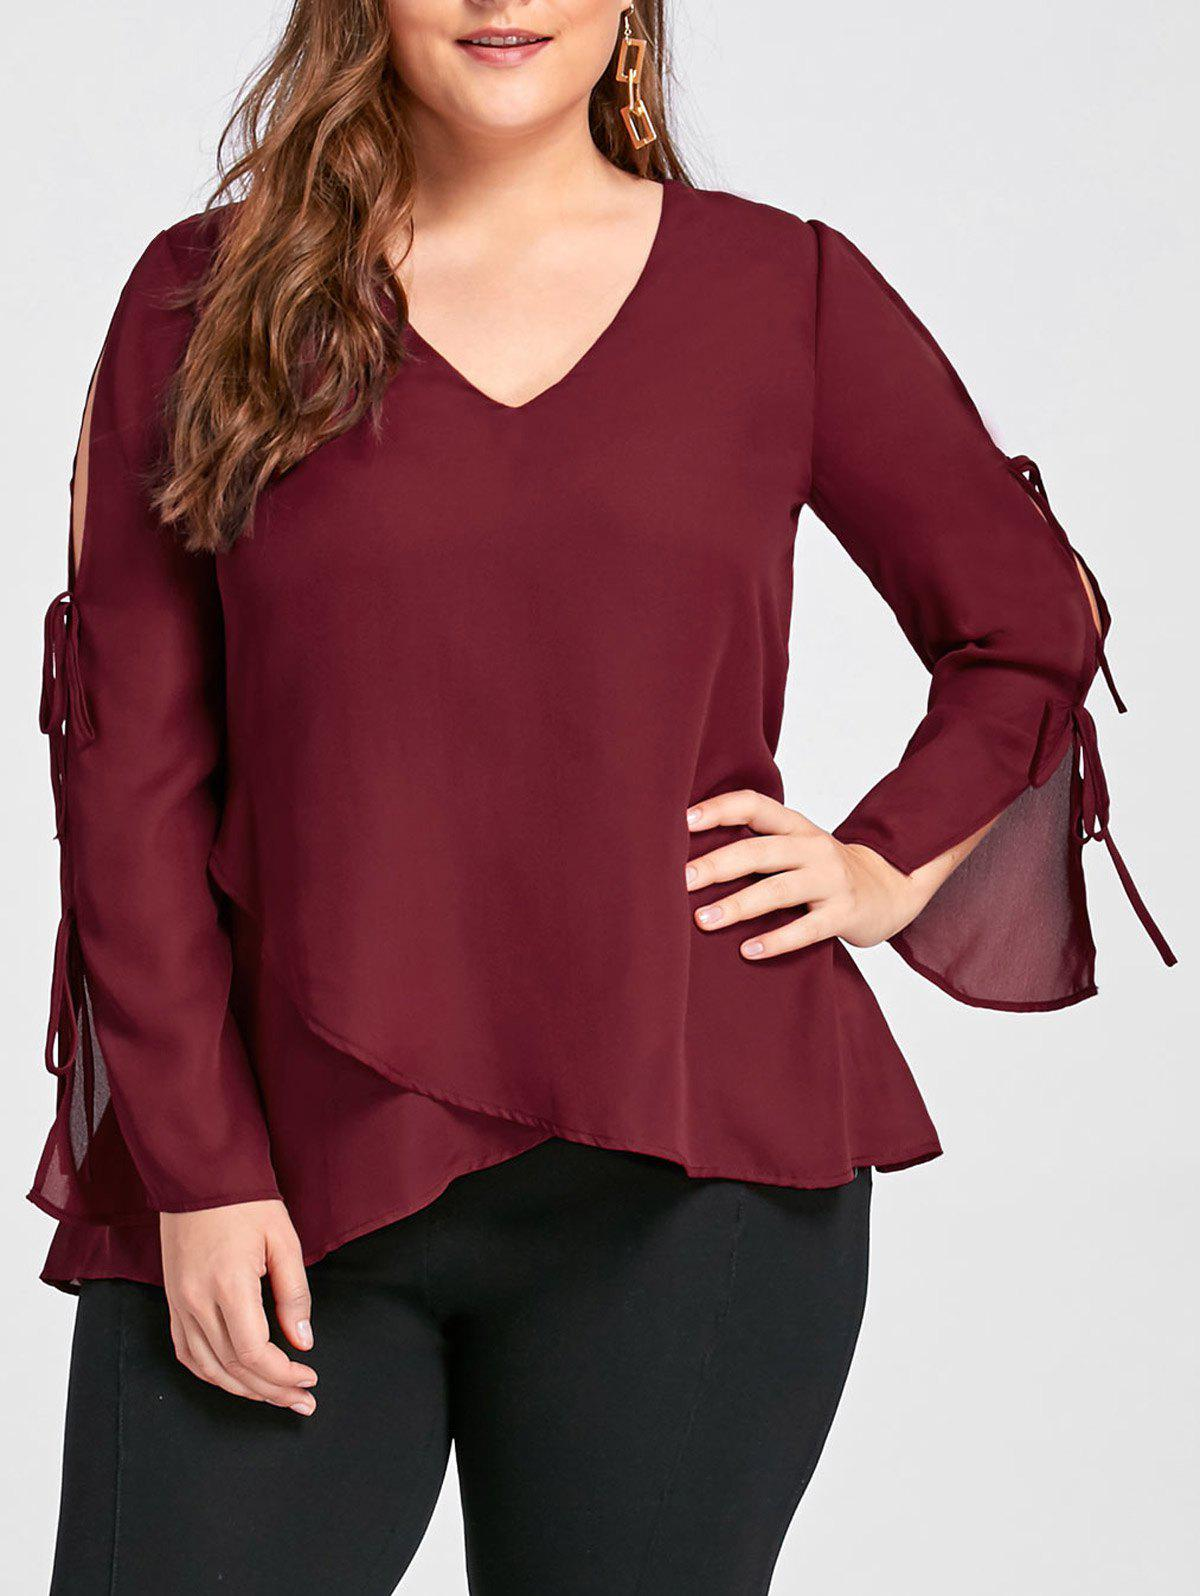 Plus Size Slit Sleeve V Neck BlouseWOMEN<br><br>Size: 2XL; Color: WINE RED; Material: Polyester; Shirt Length: Long; Sleeve Length: Full; Collar: V-Neck; Style: Casual; Season: Fall,Spring; Pattern Type: Solid; Weight: 0.2100kg; Package Contents: 1 x Blouse;